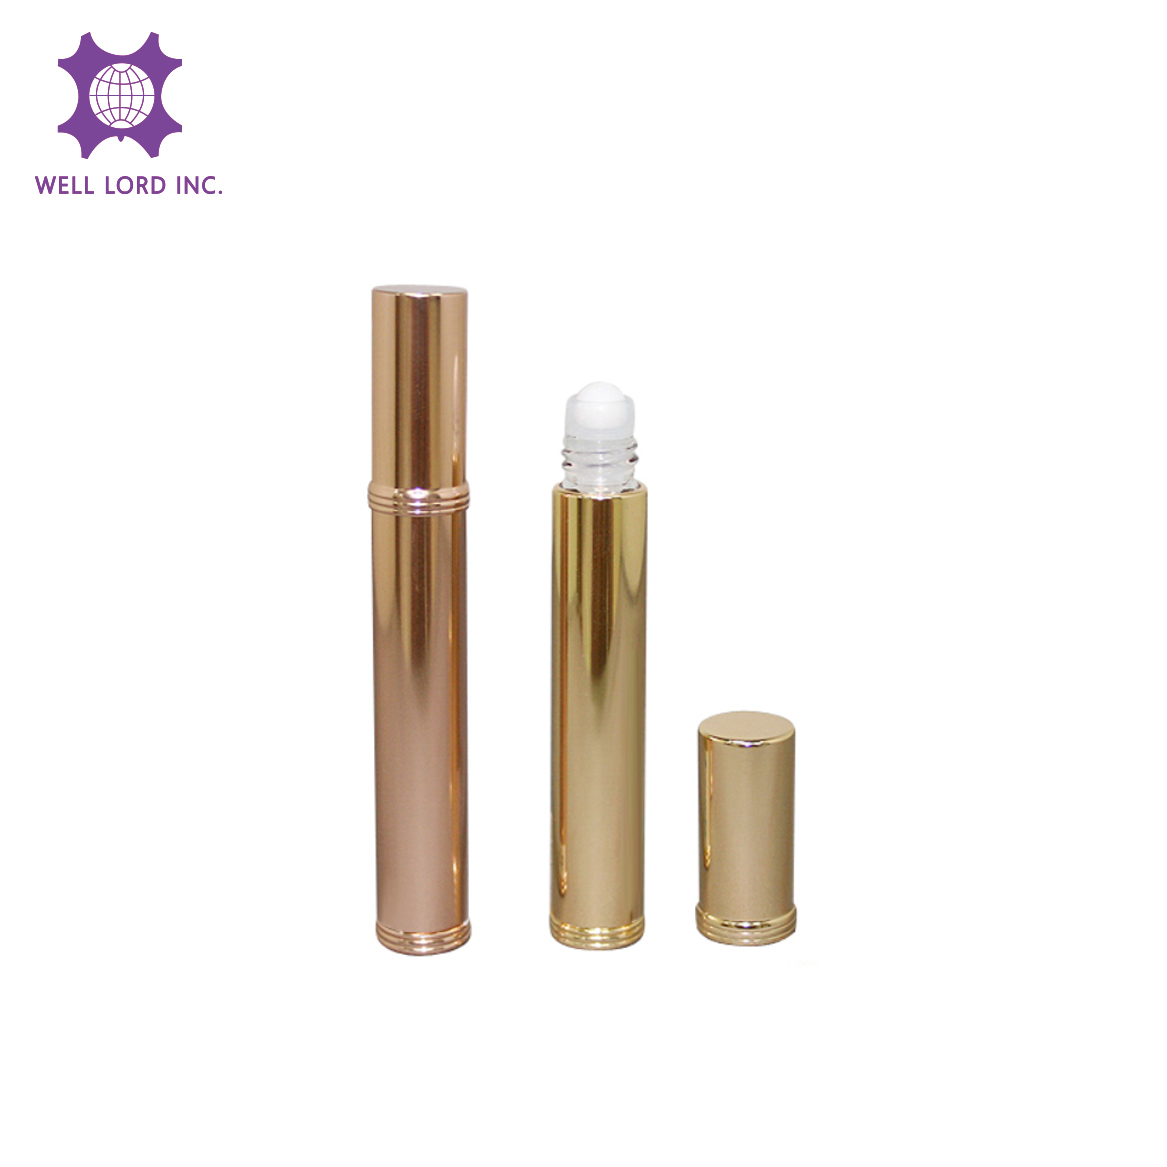 Hot designed refillable silver essential oil  roll on body care perfume roll on bottle